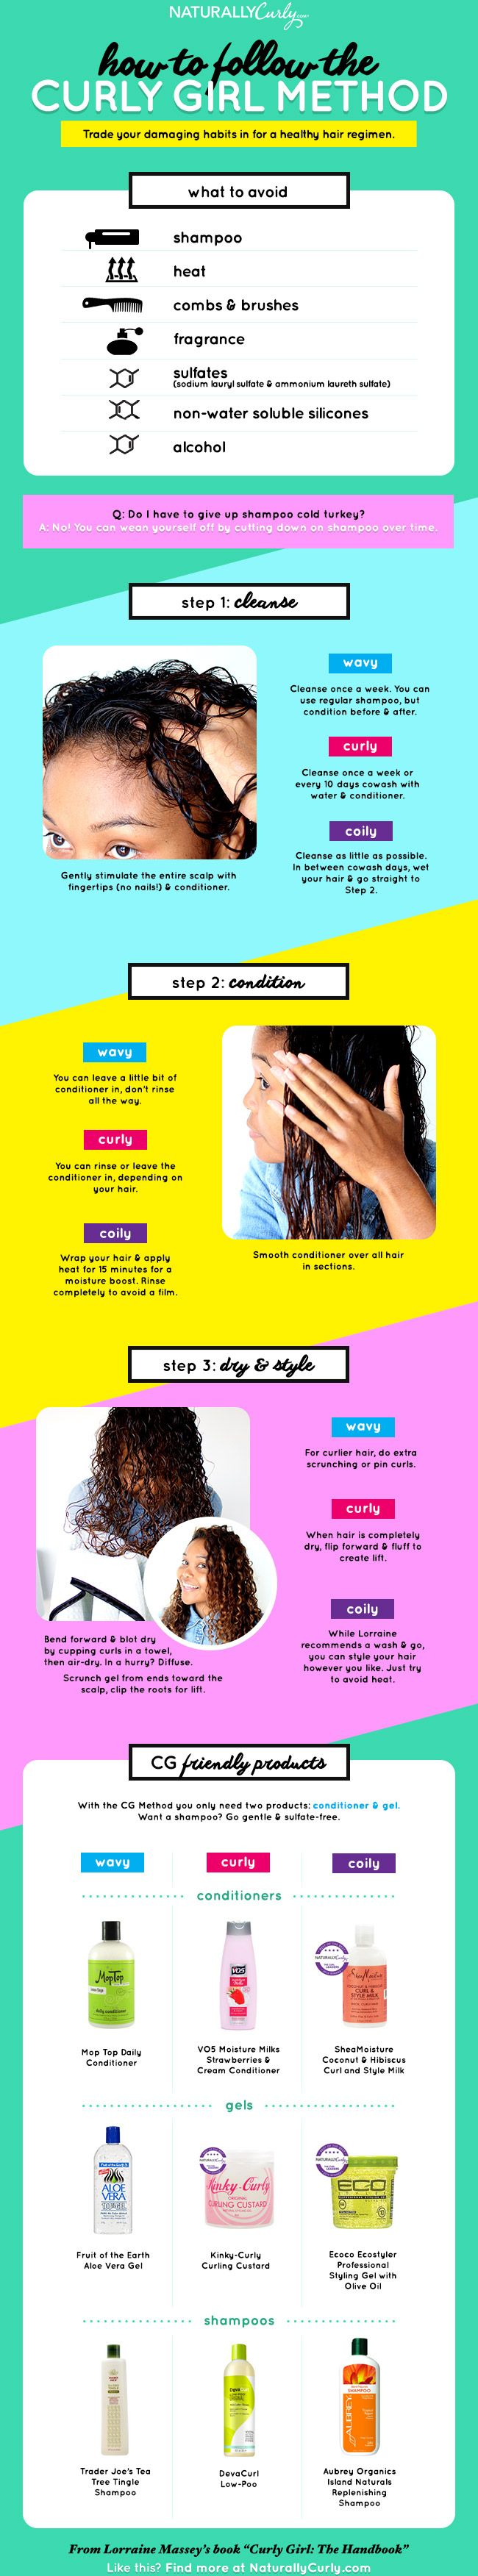 How To Follow The Curly Girl Method Naturallycurly Com